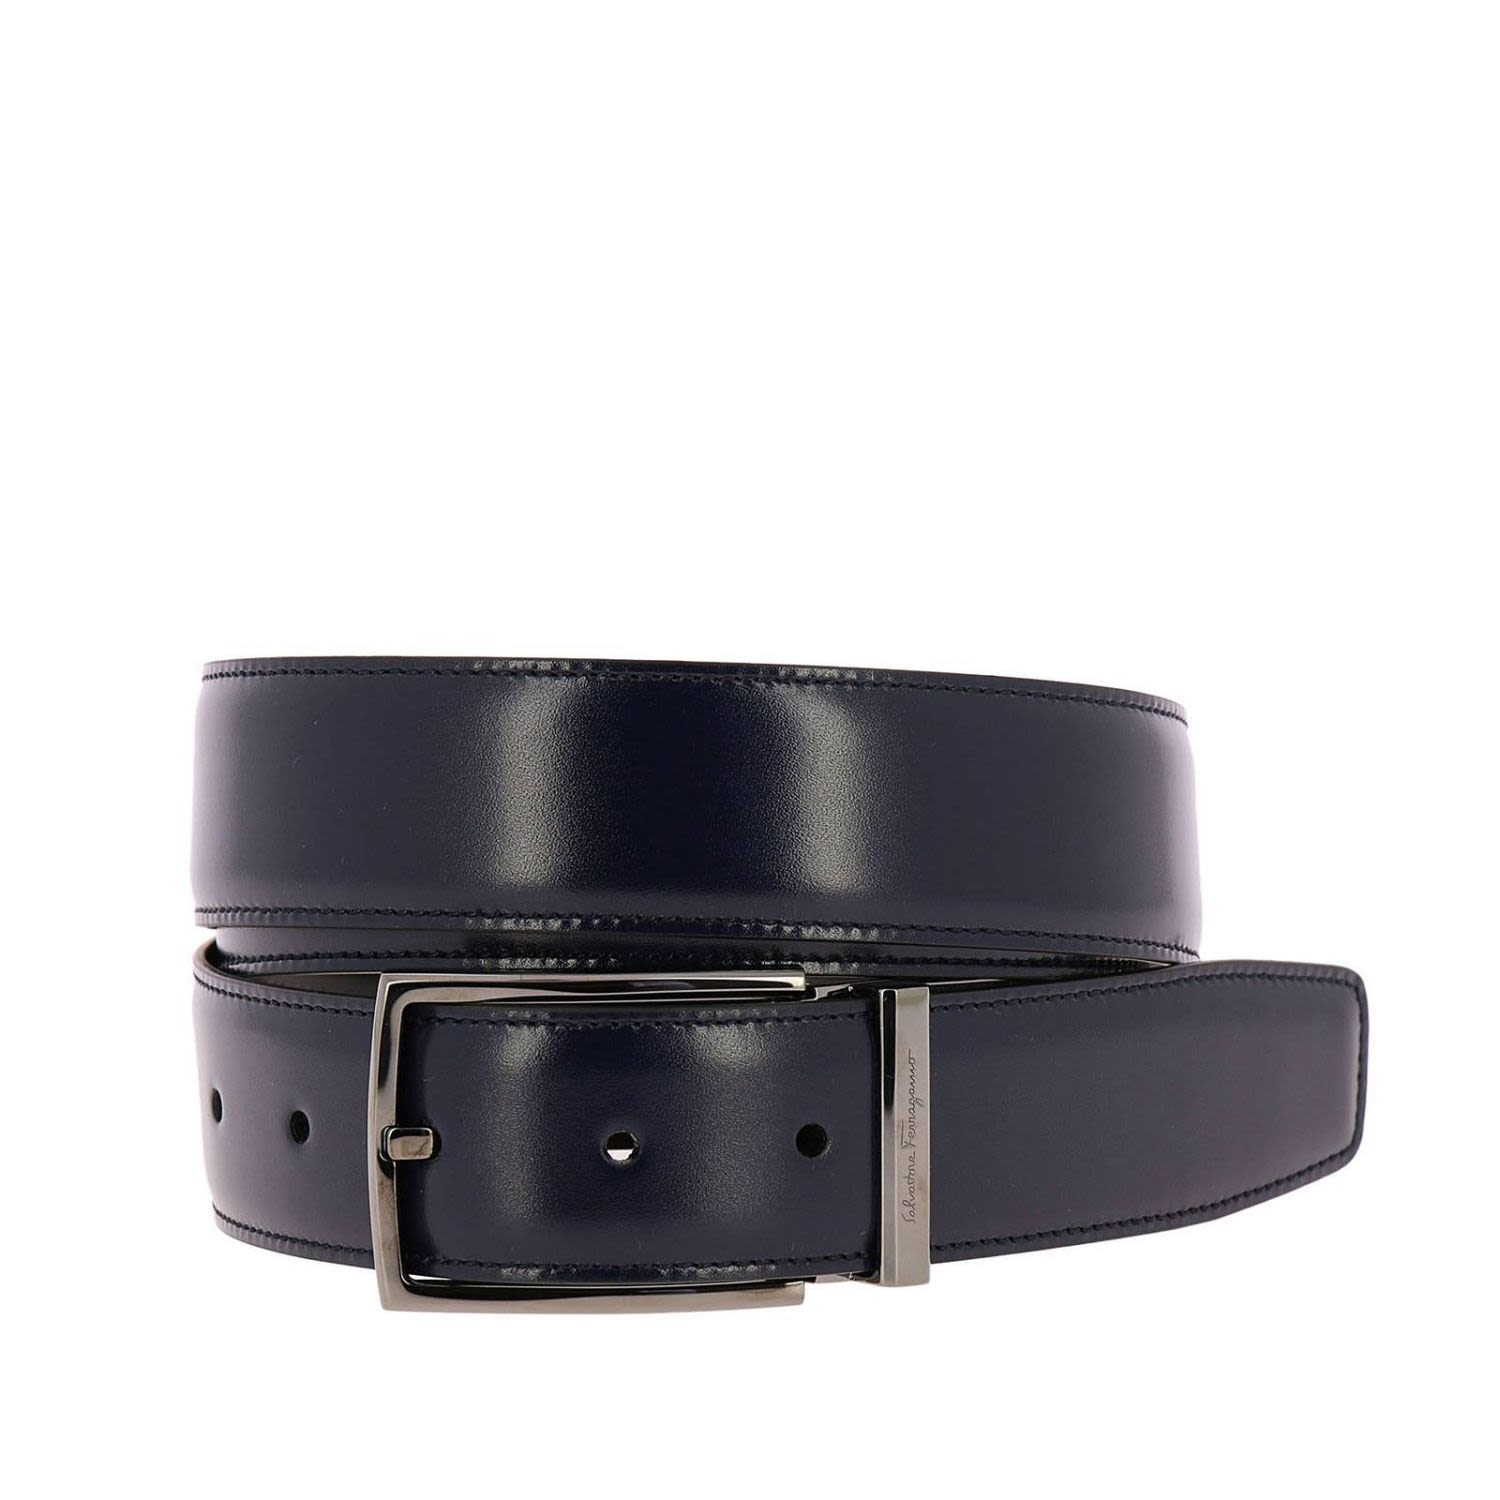 Salvatore Ferragamo Belt Ferragamo Belt Buckle In Real Leather Adjustable And Reversible With Double